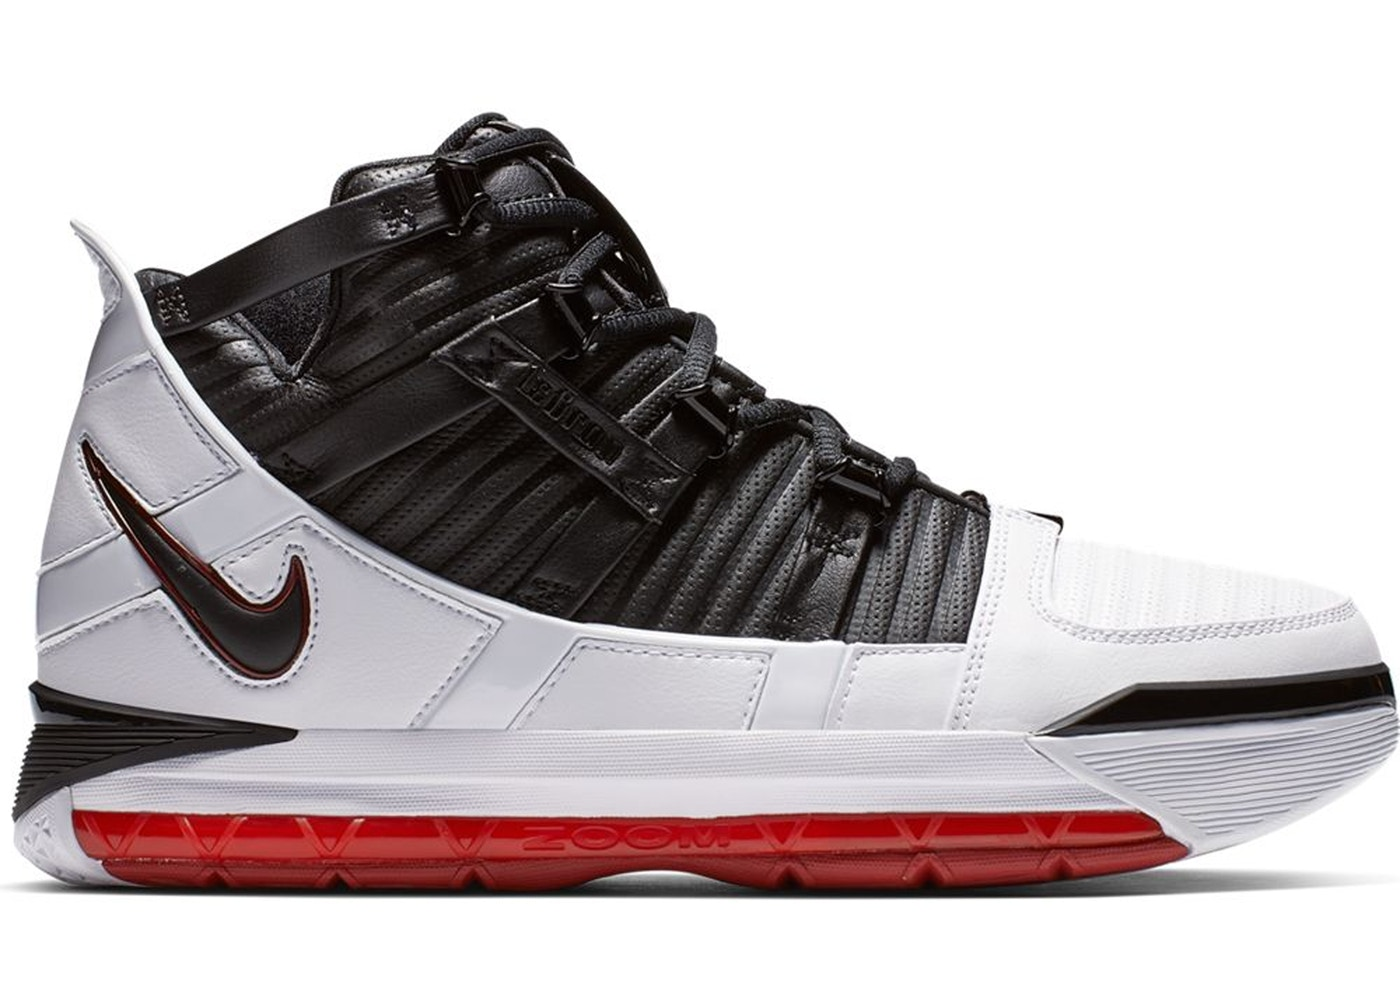 online store 81a08 5bedc Buy Nike LeBron Shoes   Deadstock Sneakers